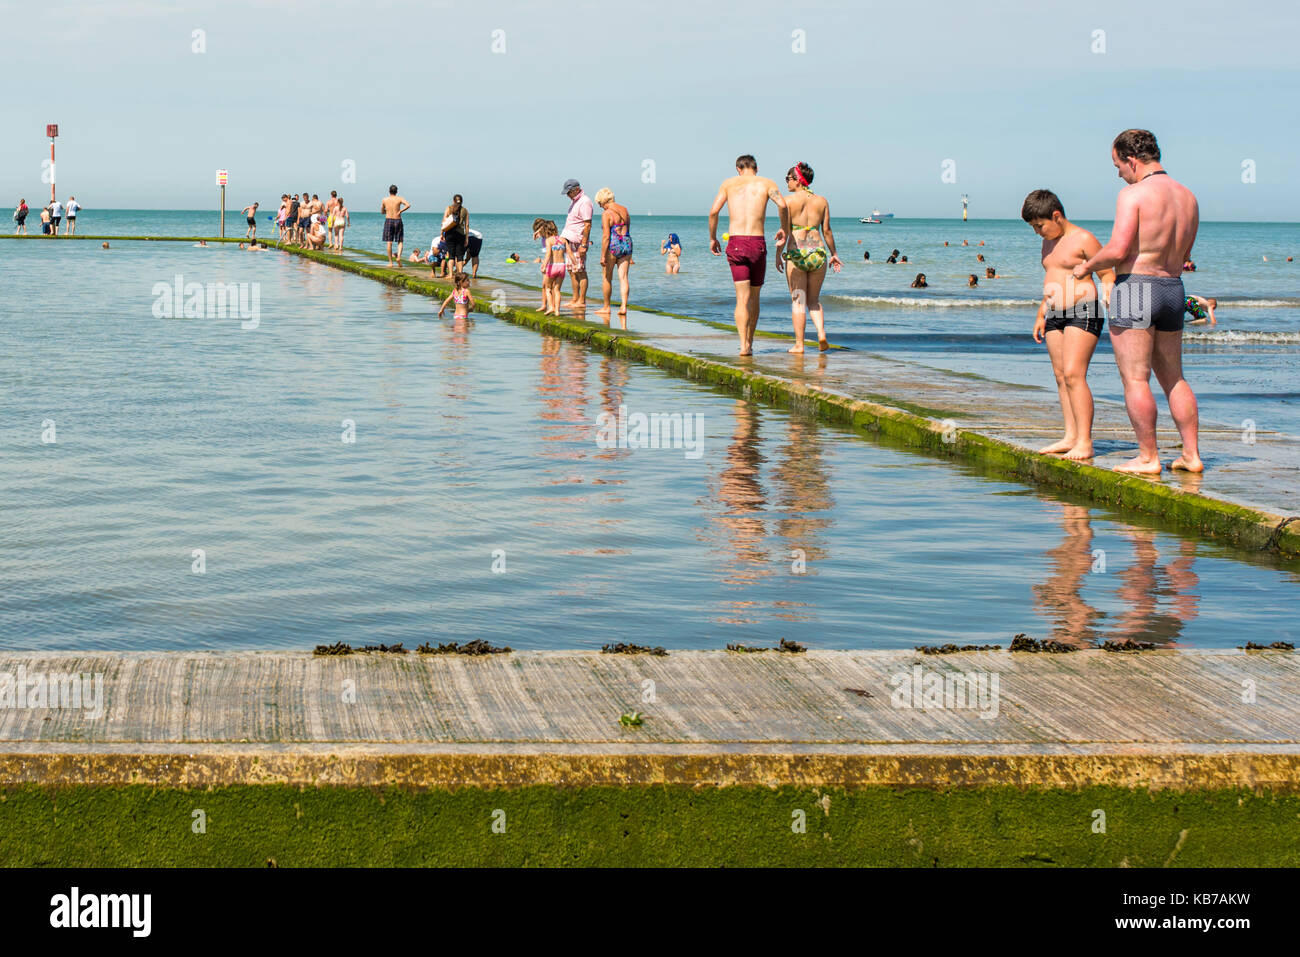 Boating Pool Sea Stock Photos Boating Pool Sea Stock Images Alamy